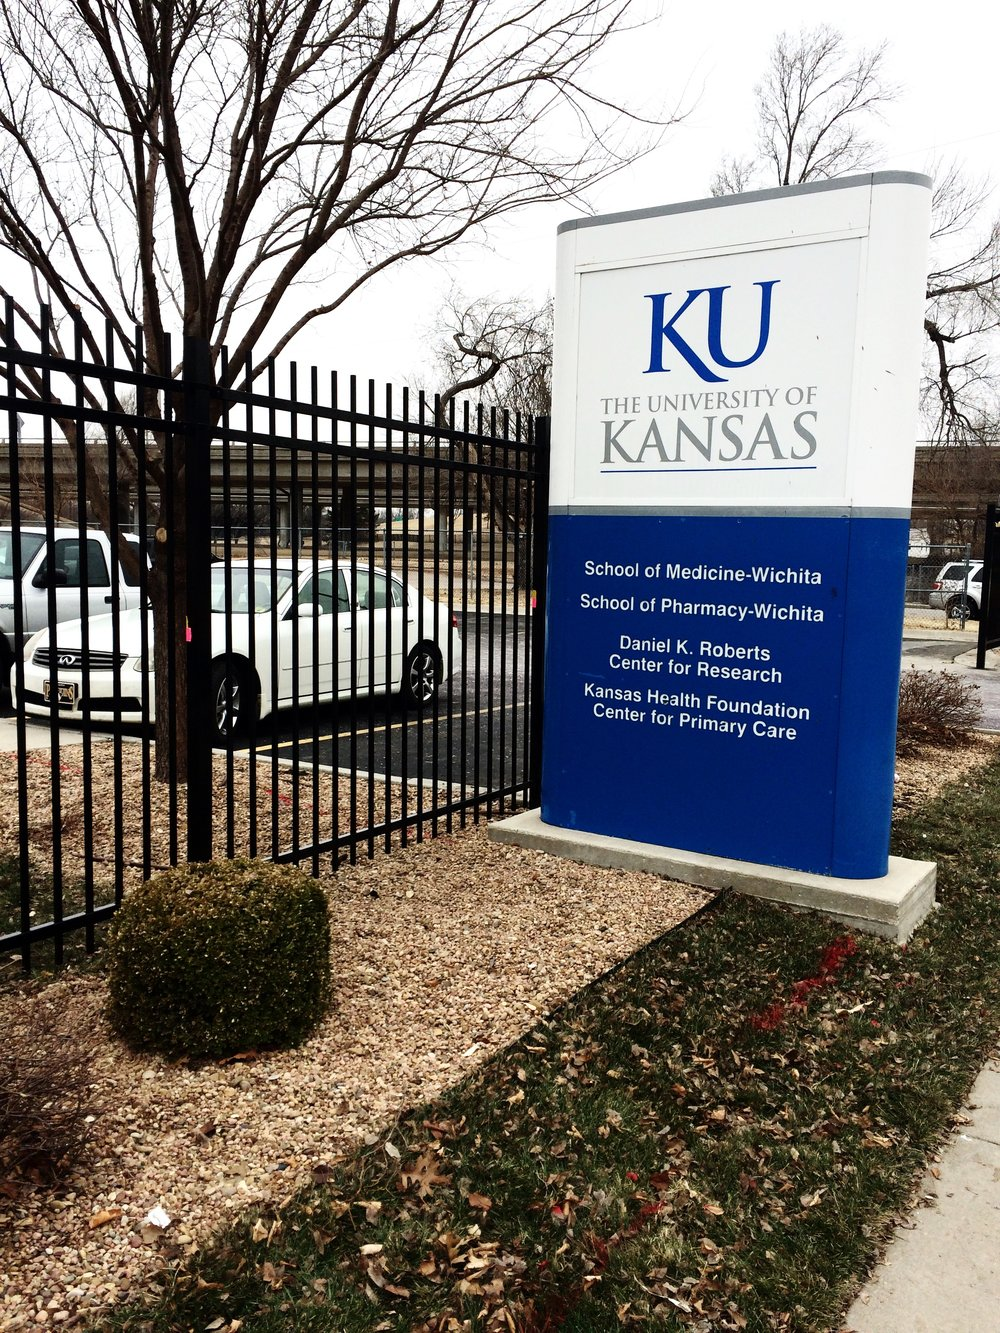 Commercial-Fences-KU-University-Of-Kansas